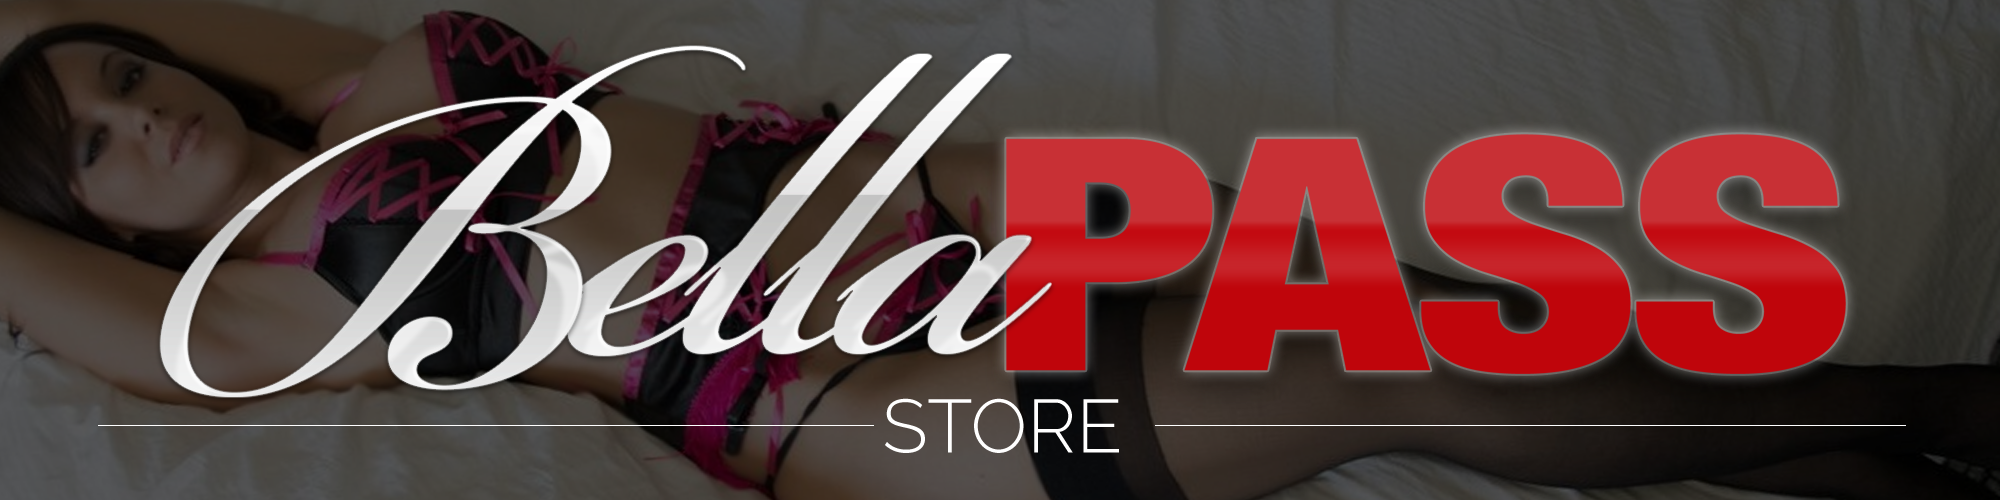 Bellapass  DVD, sex toy and Streaming Porn Video on Demand